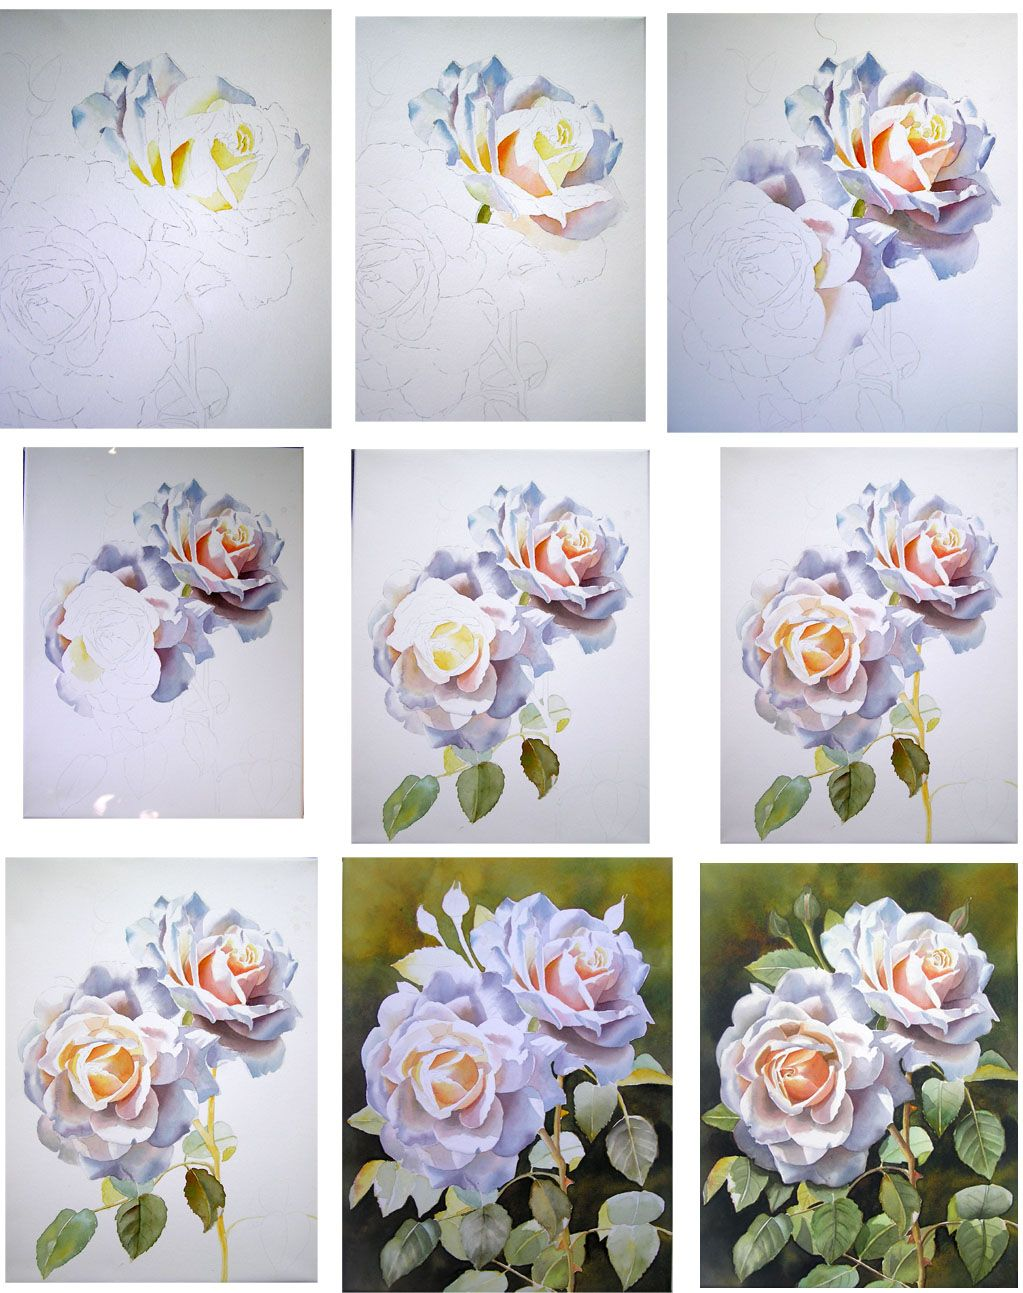 How to paint a rose watercolor rose demonstrations step by step how to paint a rose watercolor rose demonstrations step by step dhlflorist Image collections